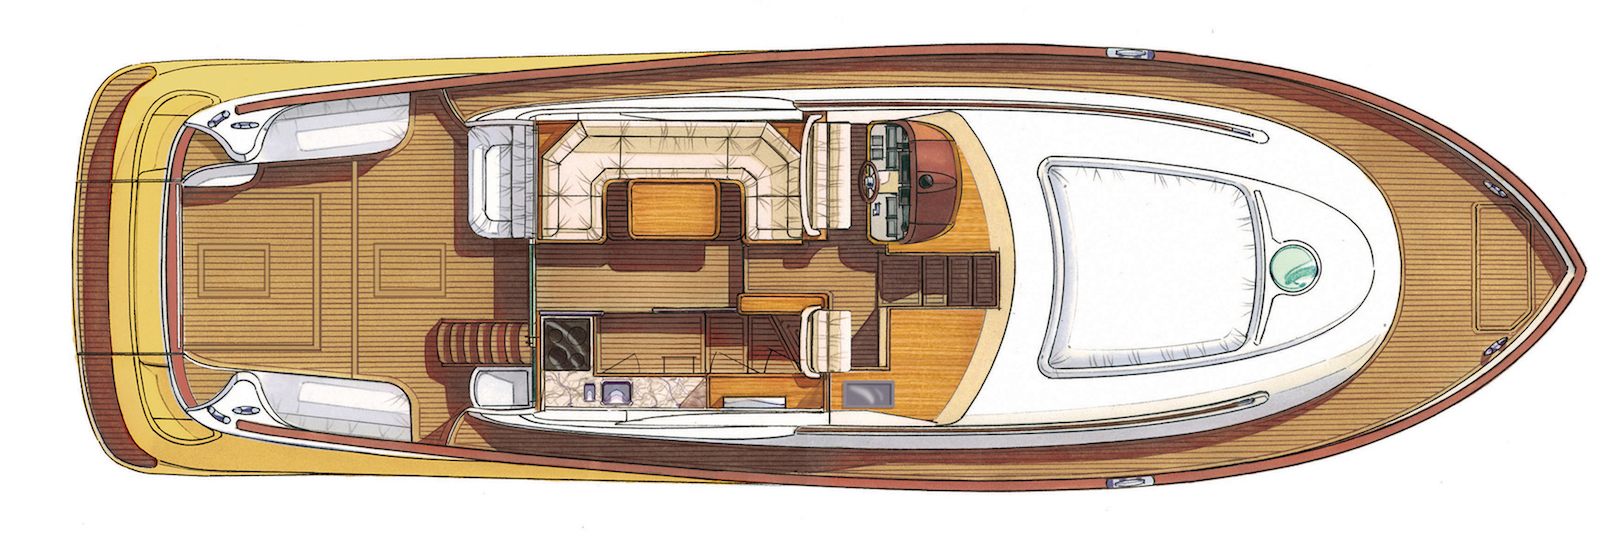 Mochi Craft Dolphin 54' Layout (img-2)